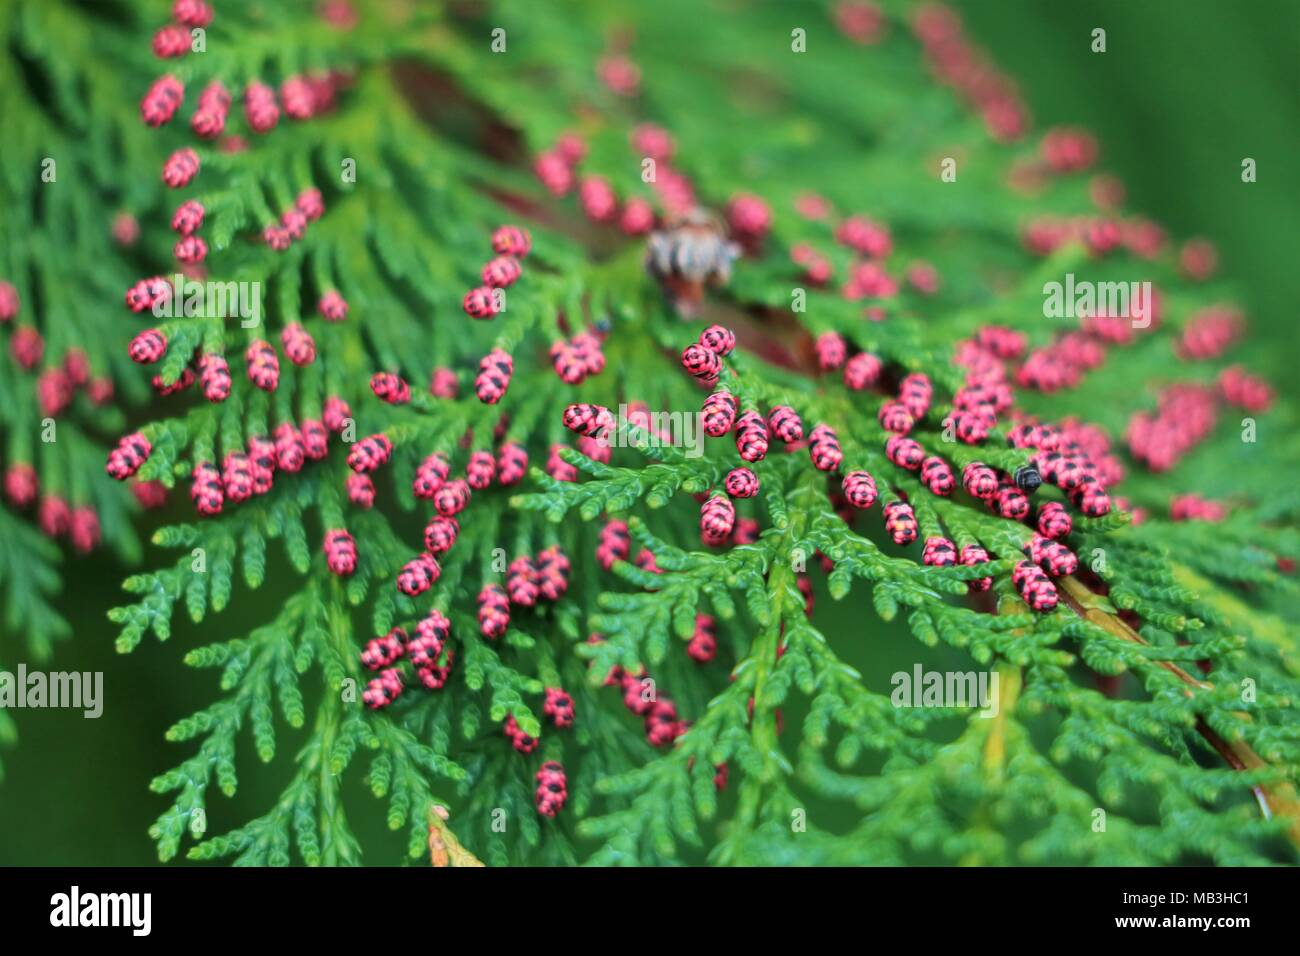 Chamaecyparis Lawsoniana - Pink tipped conifer - Stock Image